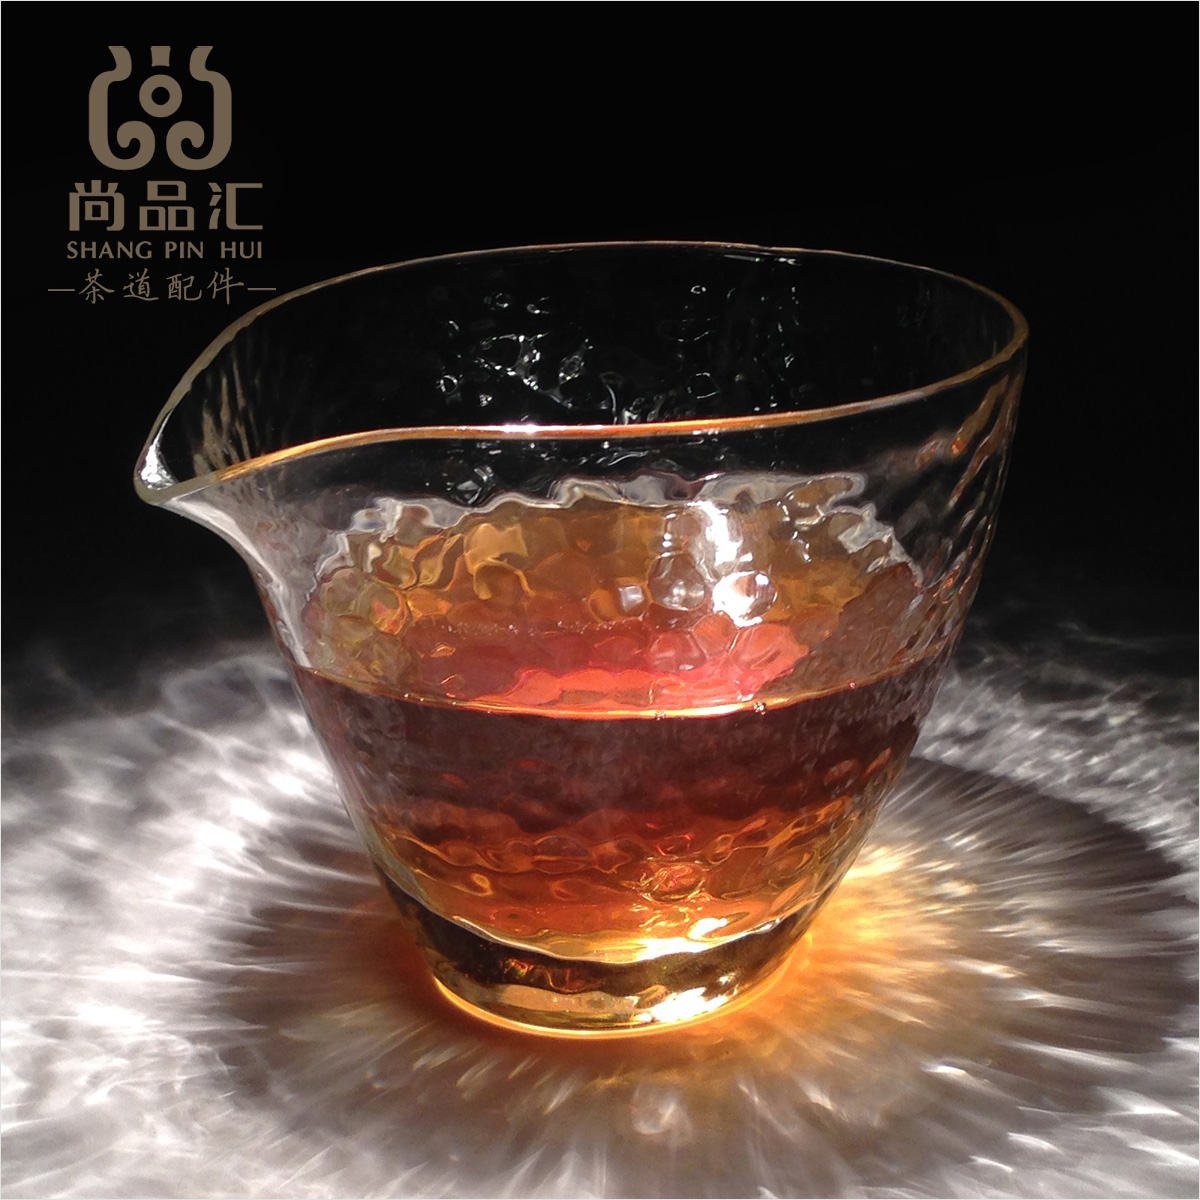 Made in japan carpenter hammer head pattern evenly cup handmade glass fair cup of tea ceremony with zero tea tea tea sea crystal metric Cup